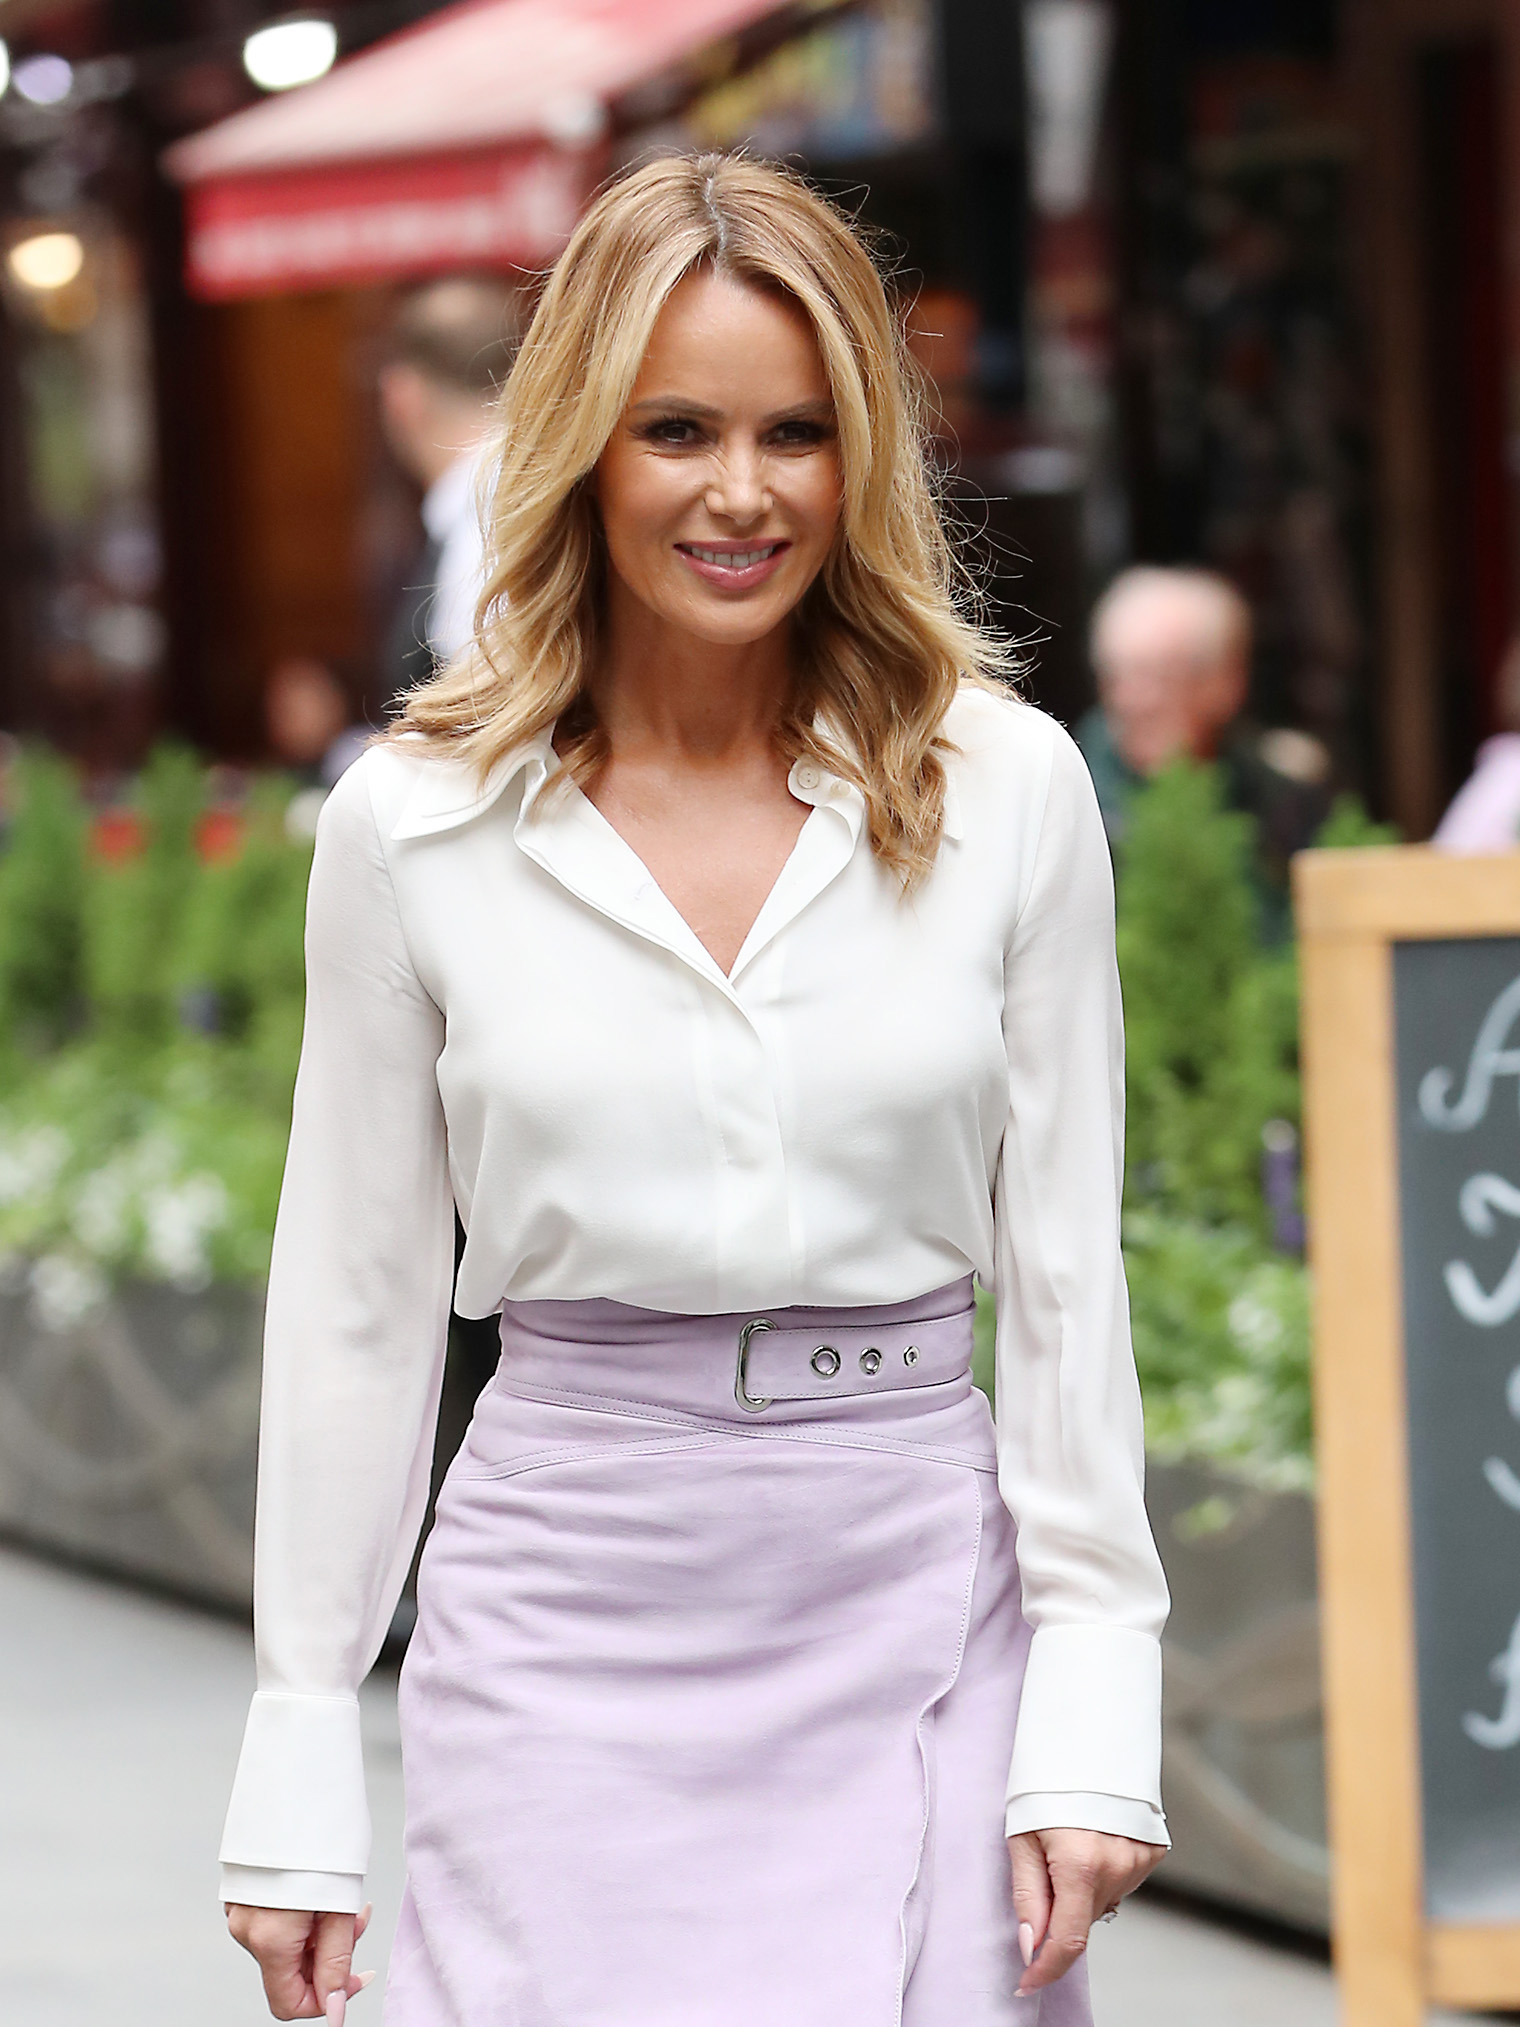 Amanda Holden is the 'cat that's got the cream' over new £3M radio gig after This Morning snub